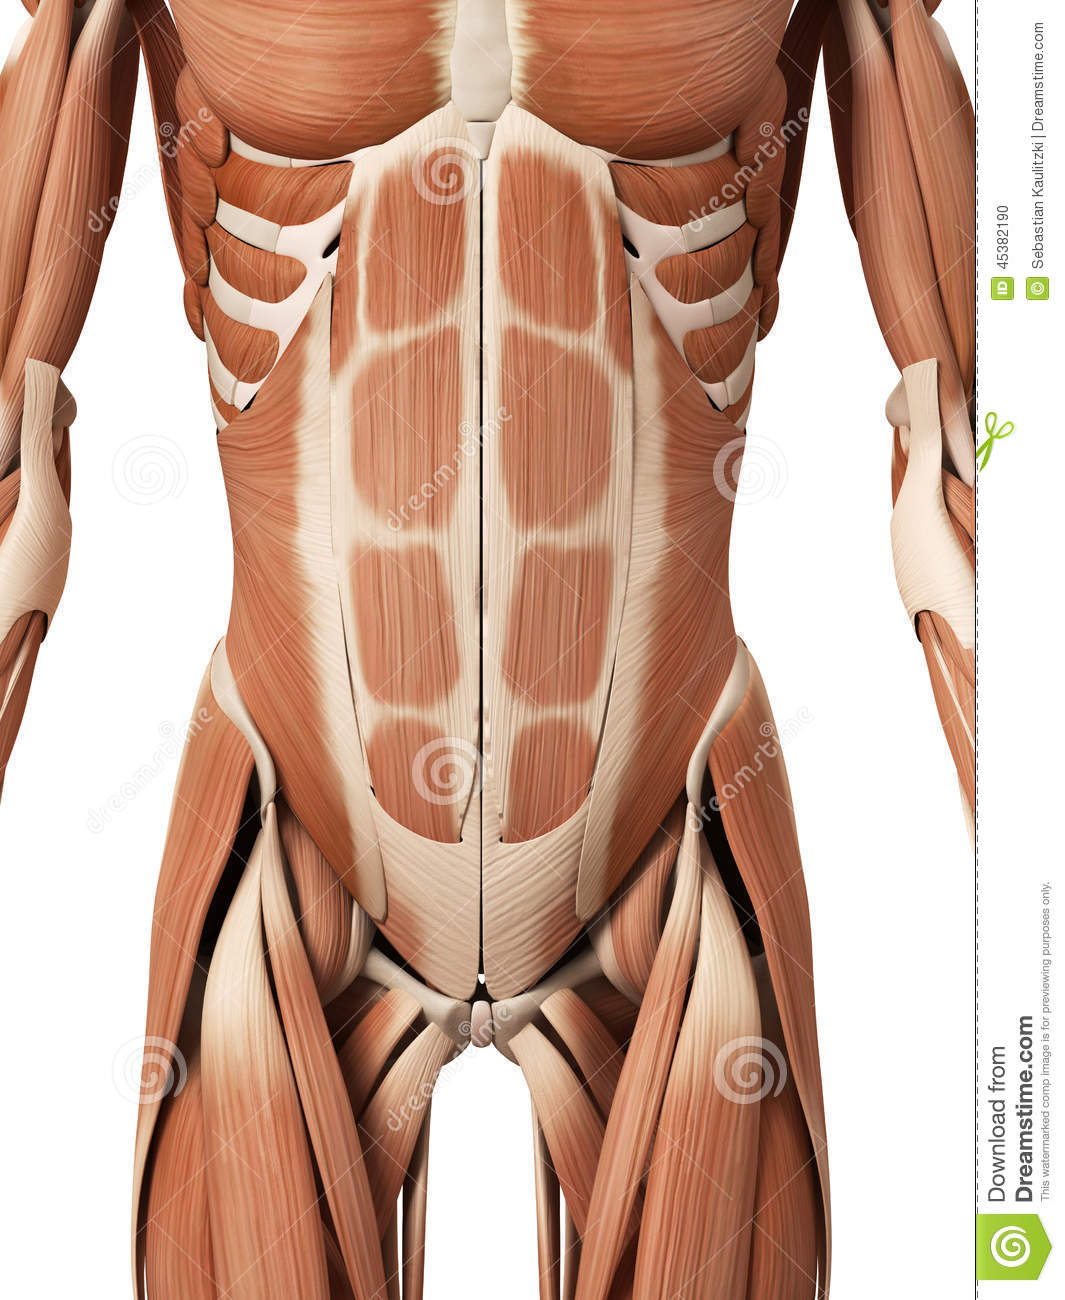 The Abdominal Muscles Stock Illustration Illustration Of Science